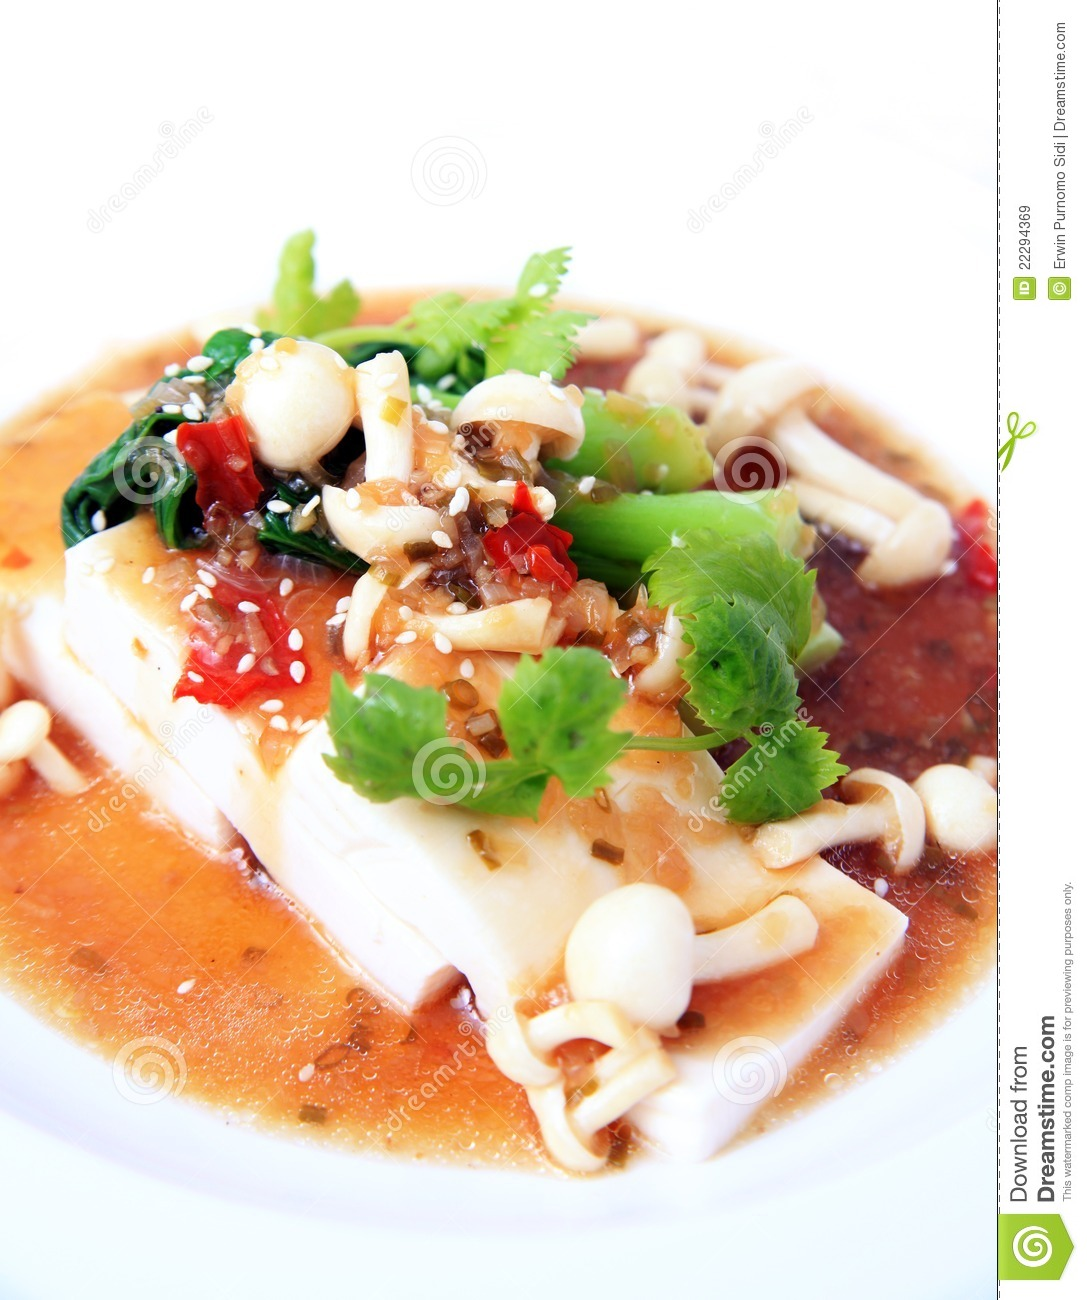 Chinese Tofu With Xo Sauce Royalty Free Stock Images - Image: 22294369